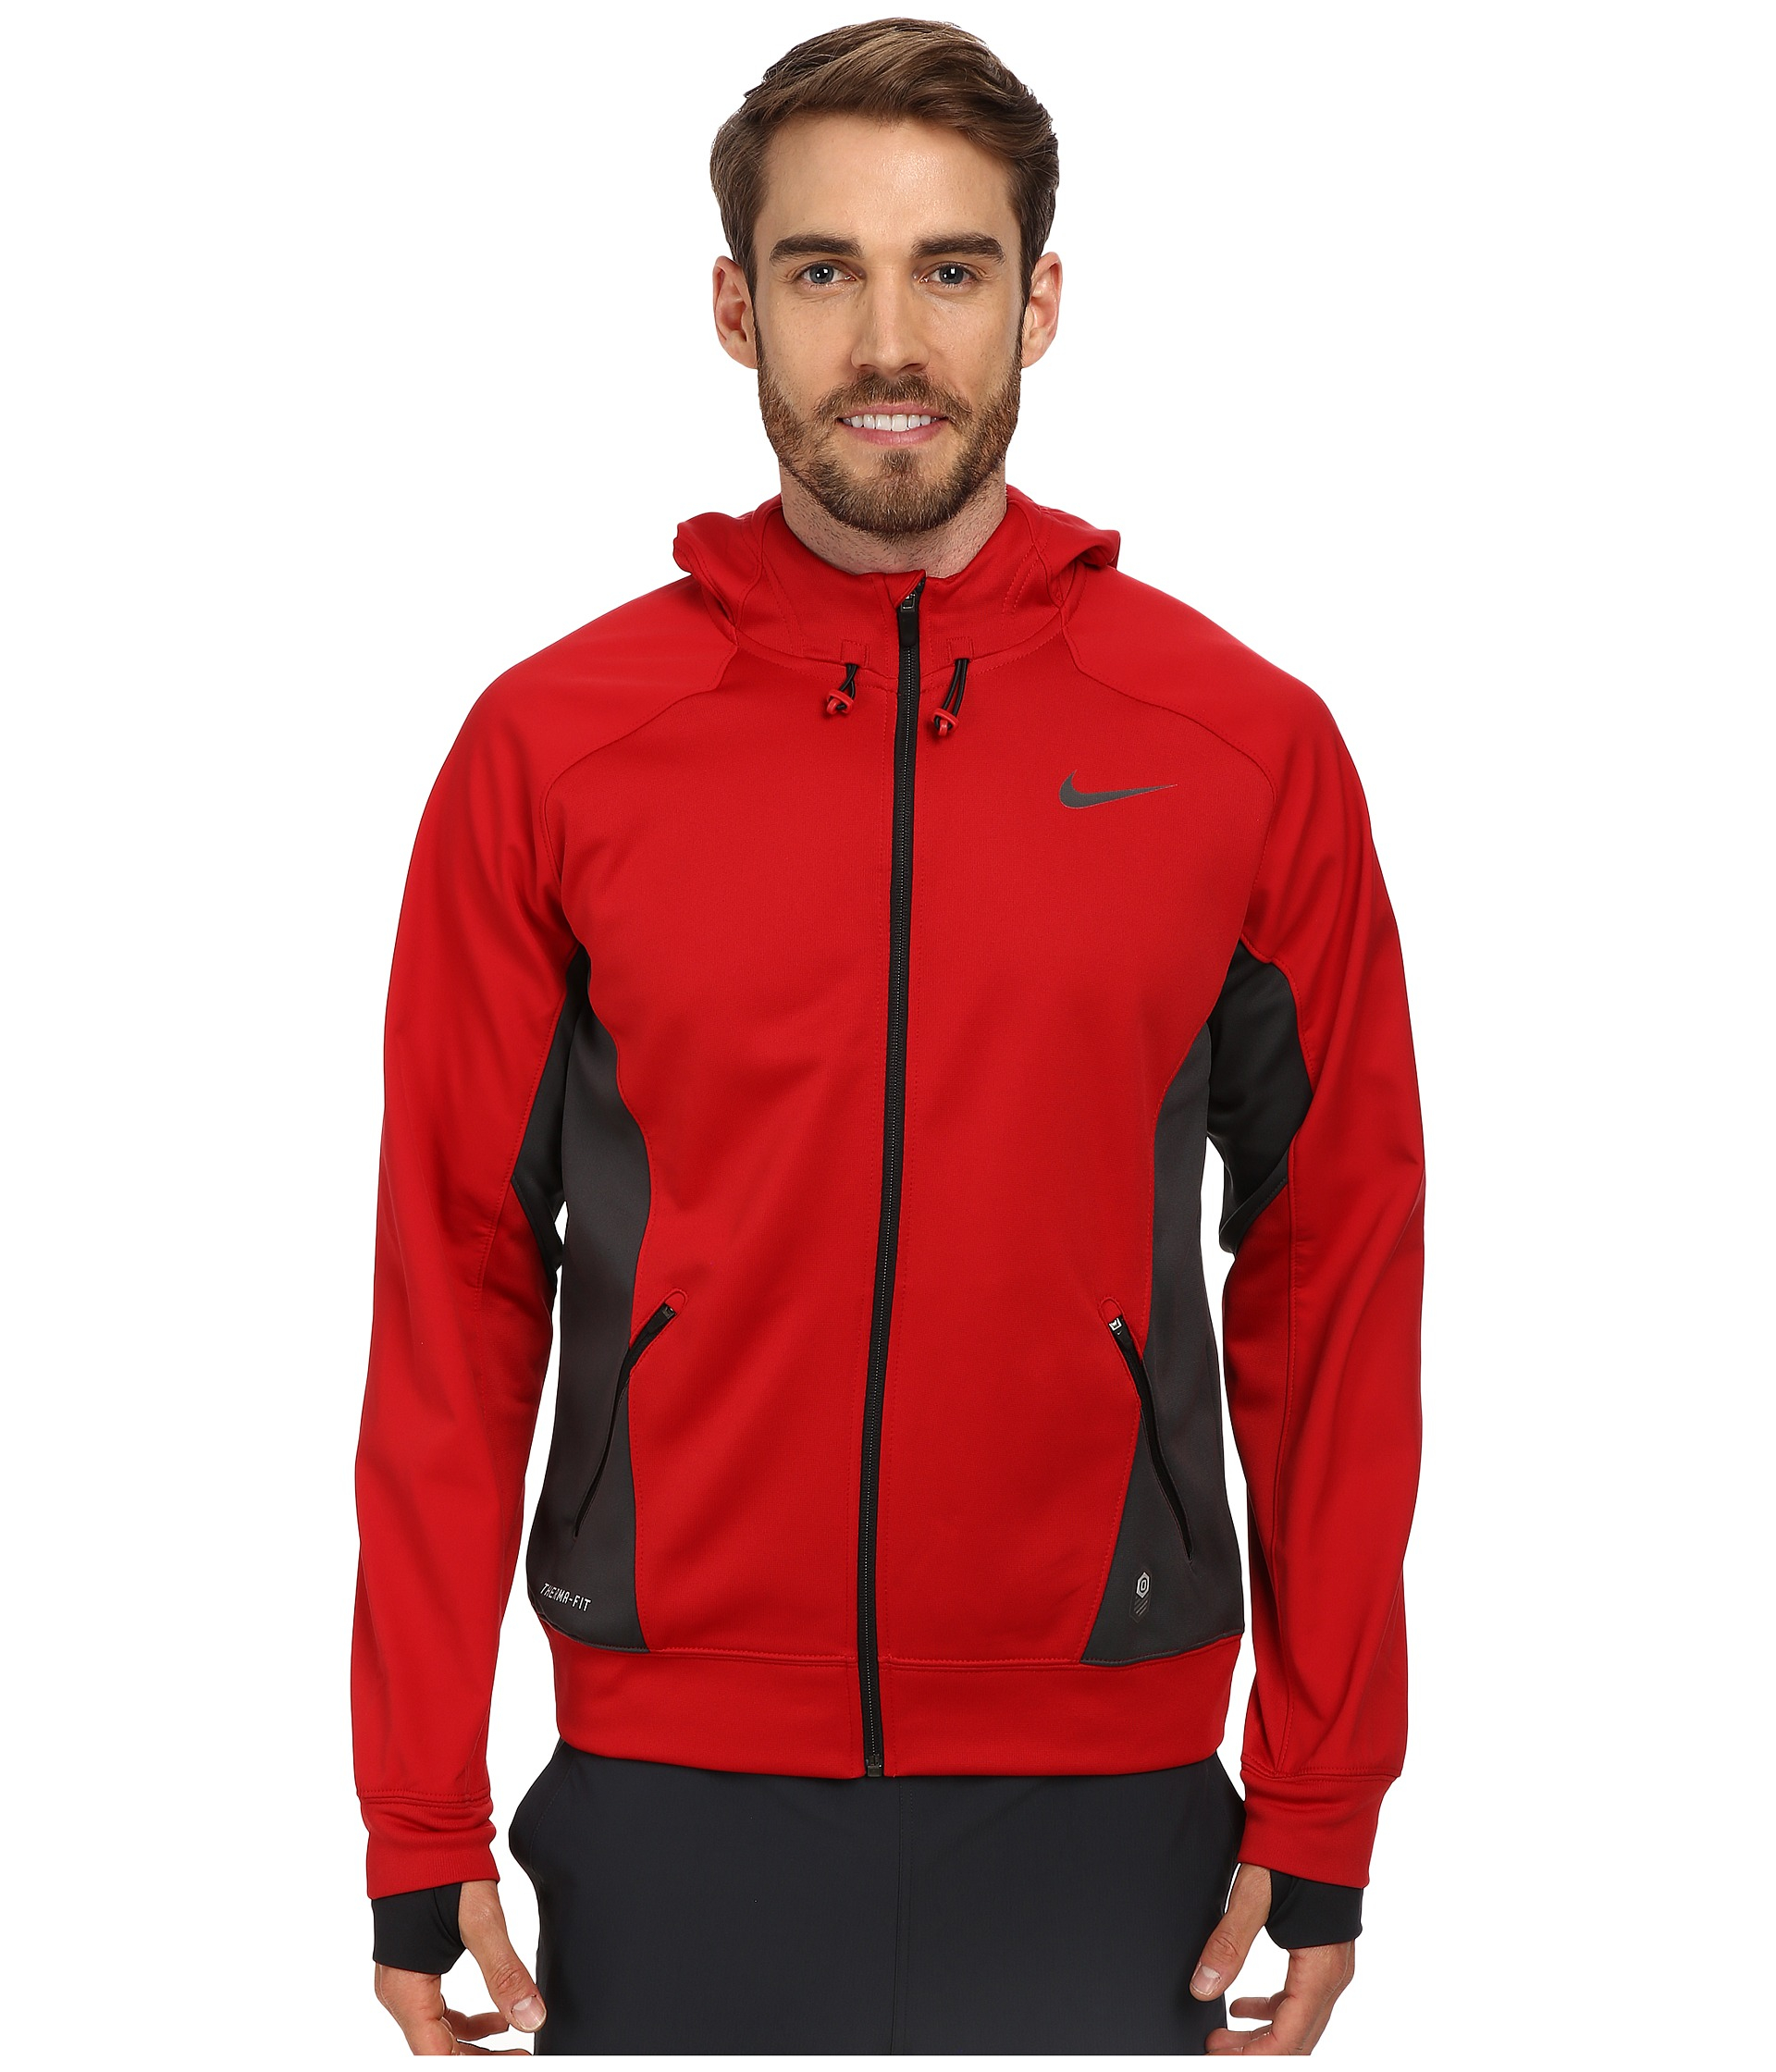 Lyst - Nike Hero Outdoor Tech Full-Zip Hoodie in Red for Men fd5a4a4ce